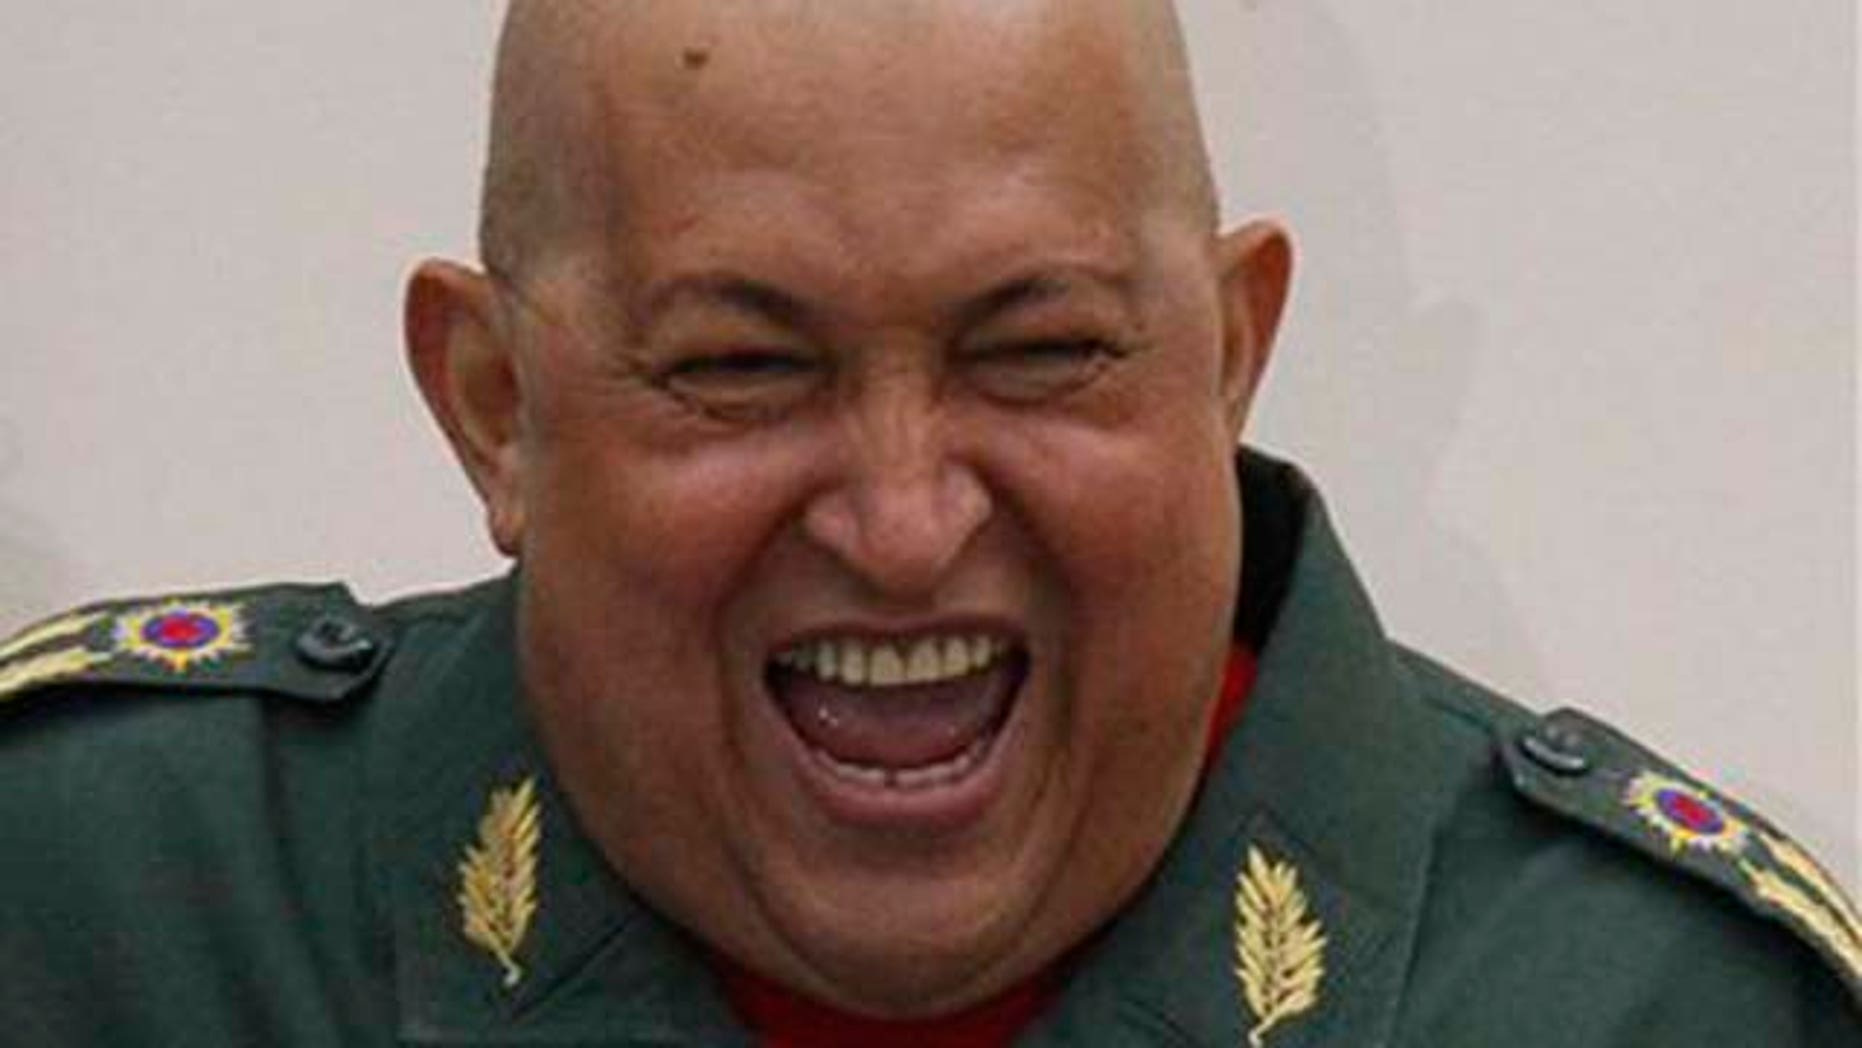 Aug. 27, 2011: Venezuela's President Hugo Chávez reacts in front of supporters on the balcony of the Miraflores presidential palace in Caracas, Venezuela.